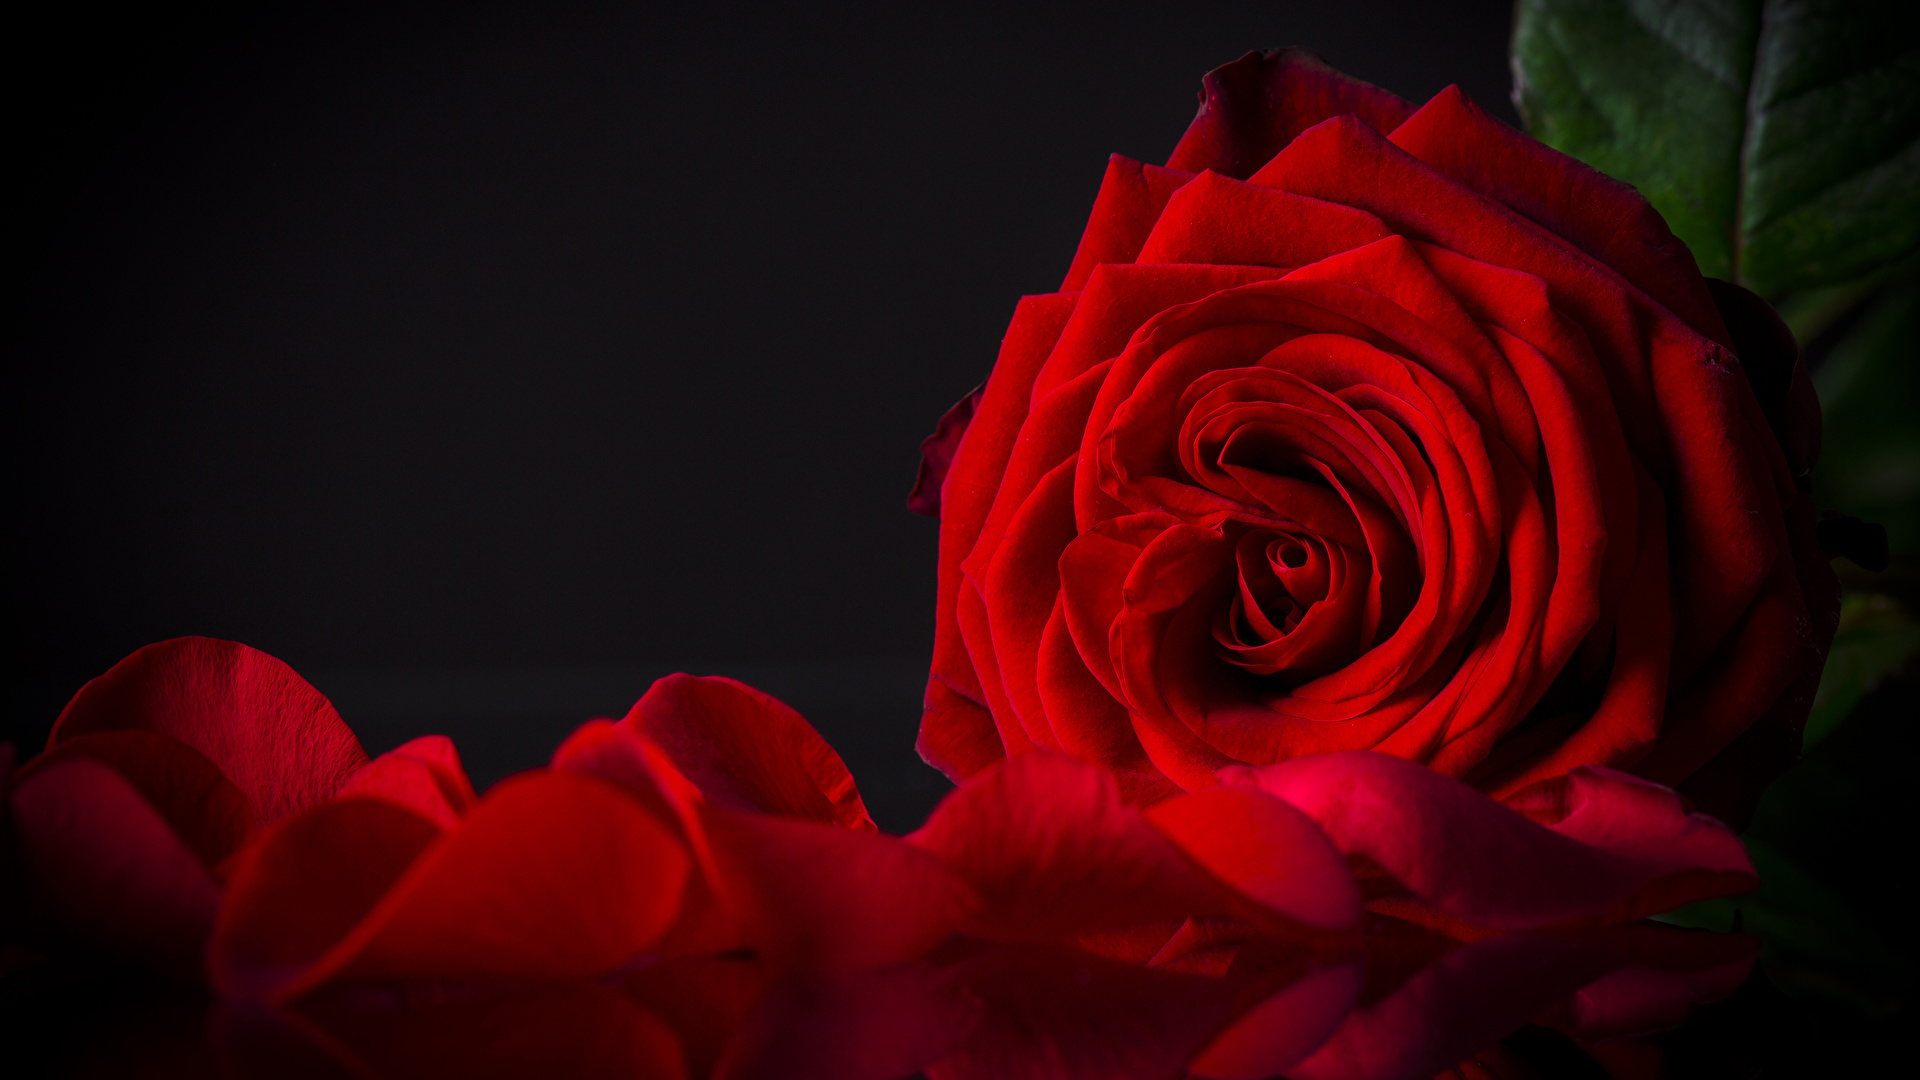 Images Red Roses Petals Flowers Closeup Black Background 1920x1080